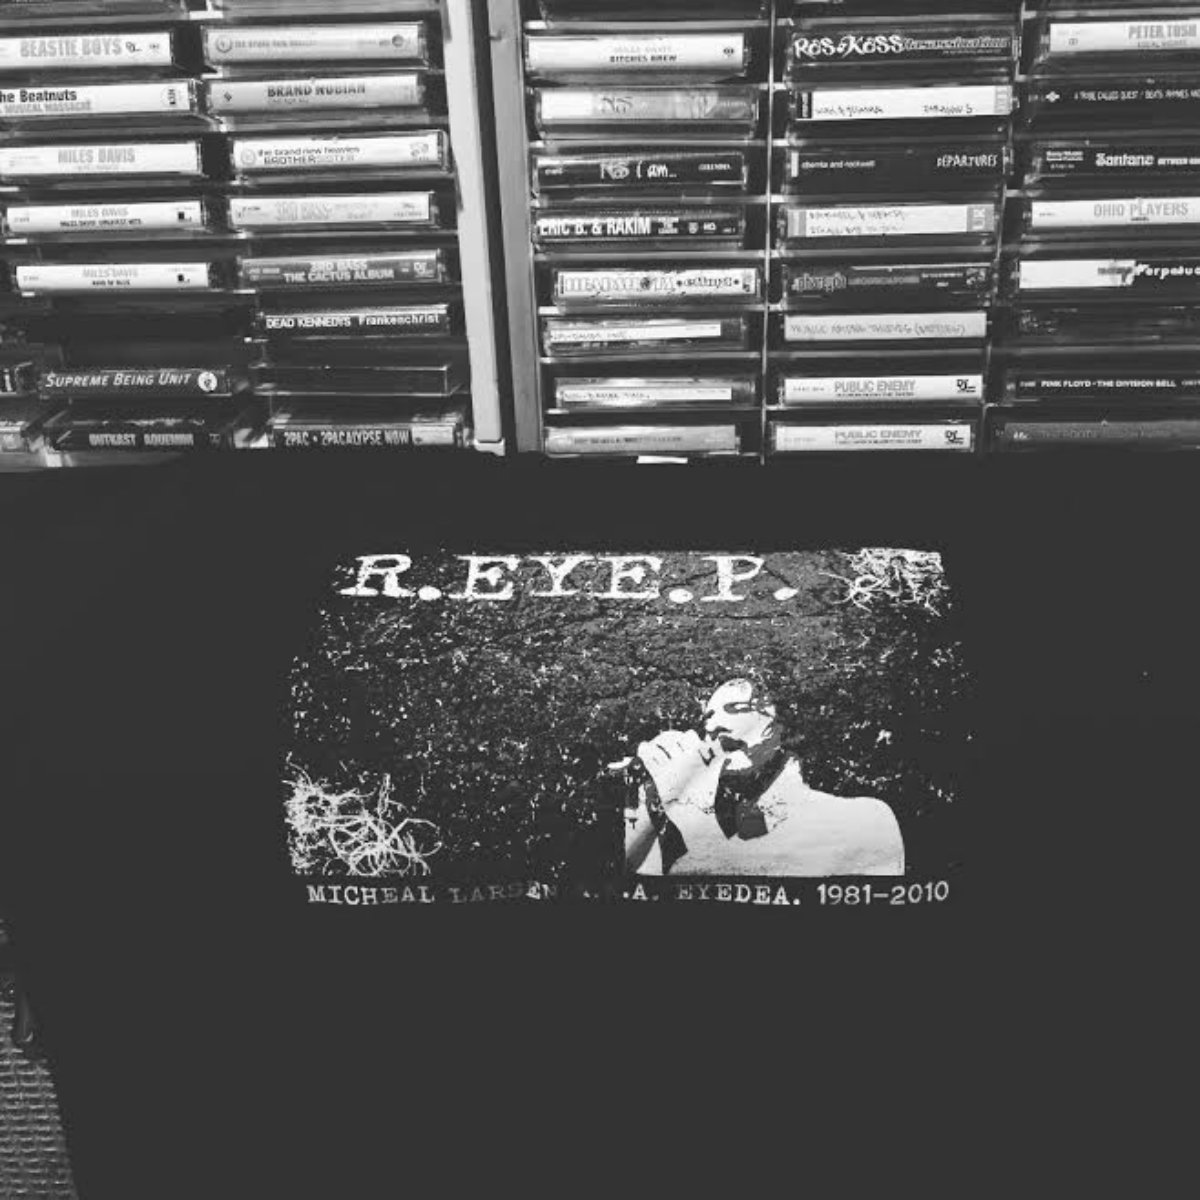 R.Eye.P Crewneck Sweatshirts + Hoodies Now Available!